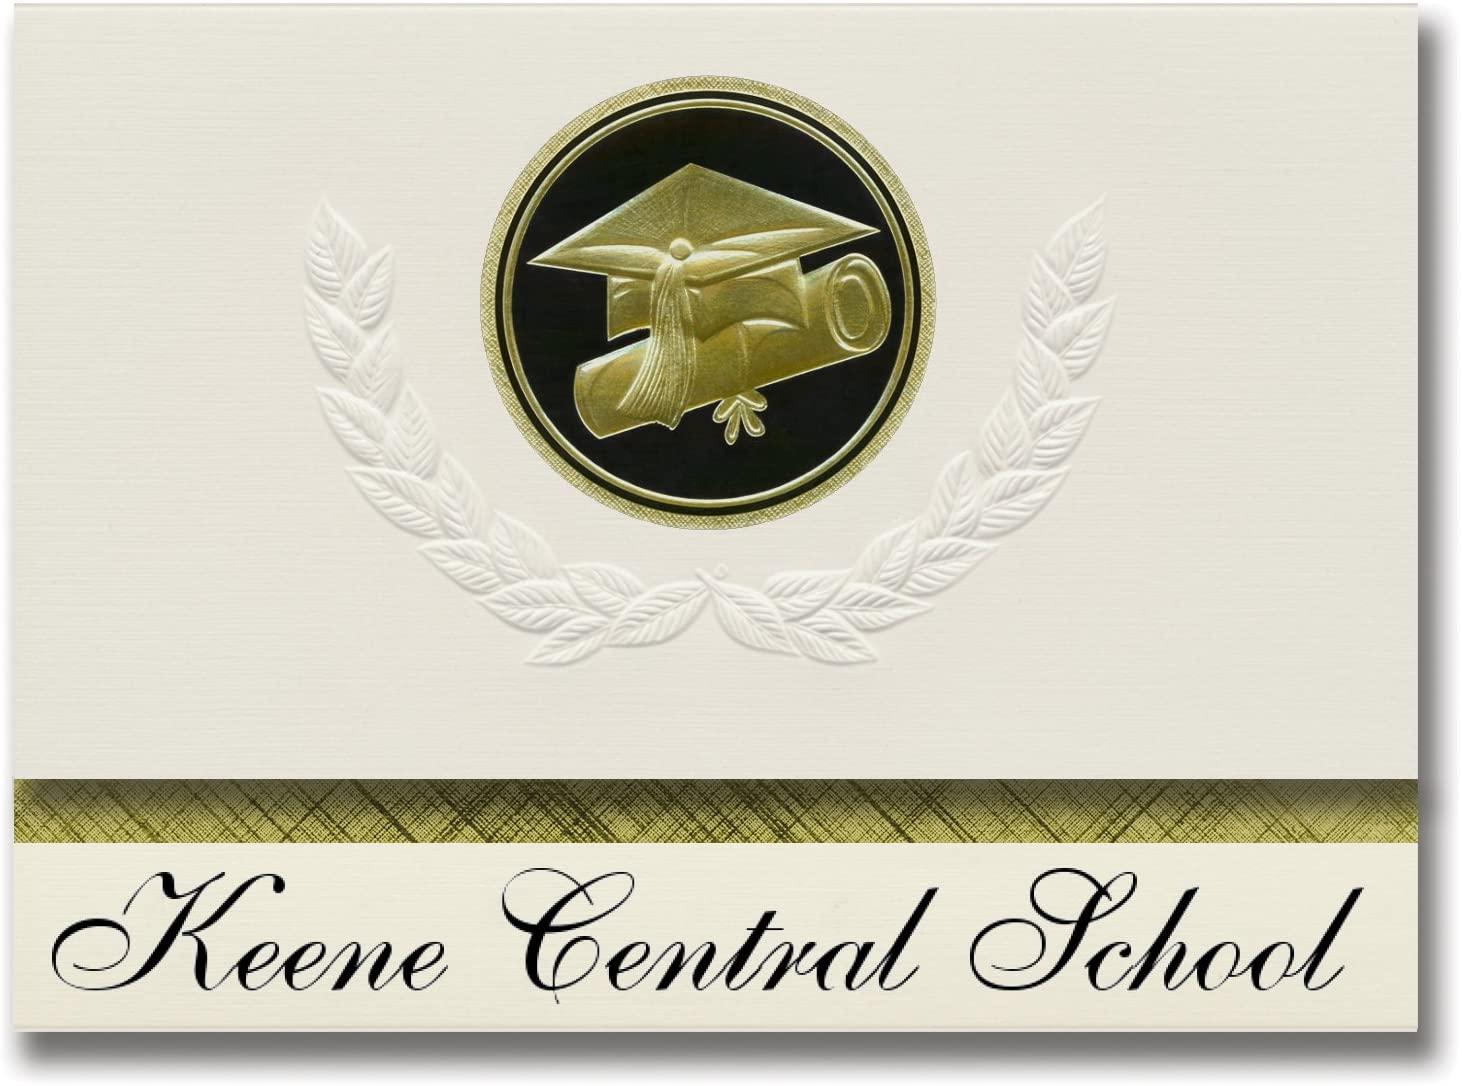 Signature Announcements Keene Central School (Keene Valley, NY) Graduation Announcements, Presidential style, Elite package of 25 Cap & Diploma Seal Black & Gold